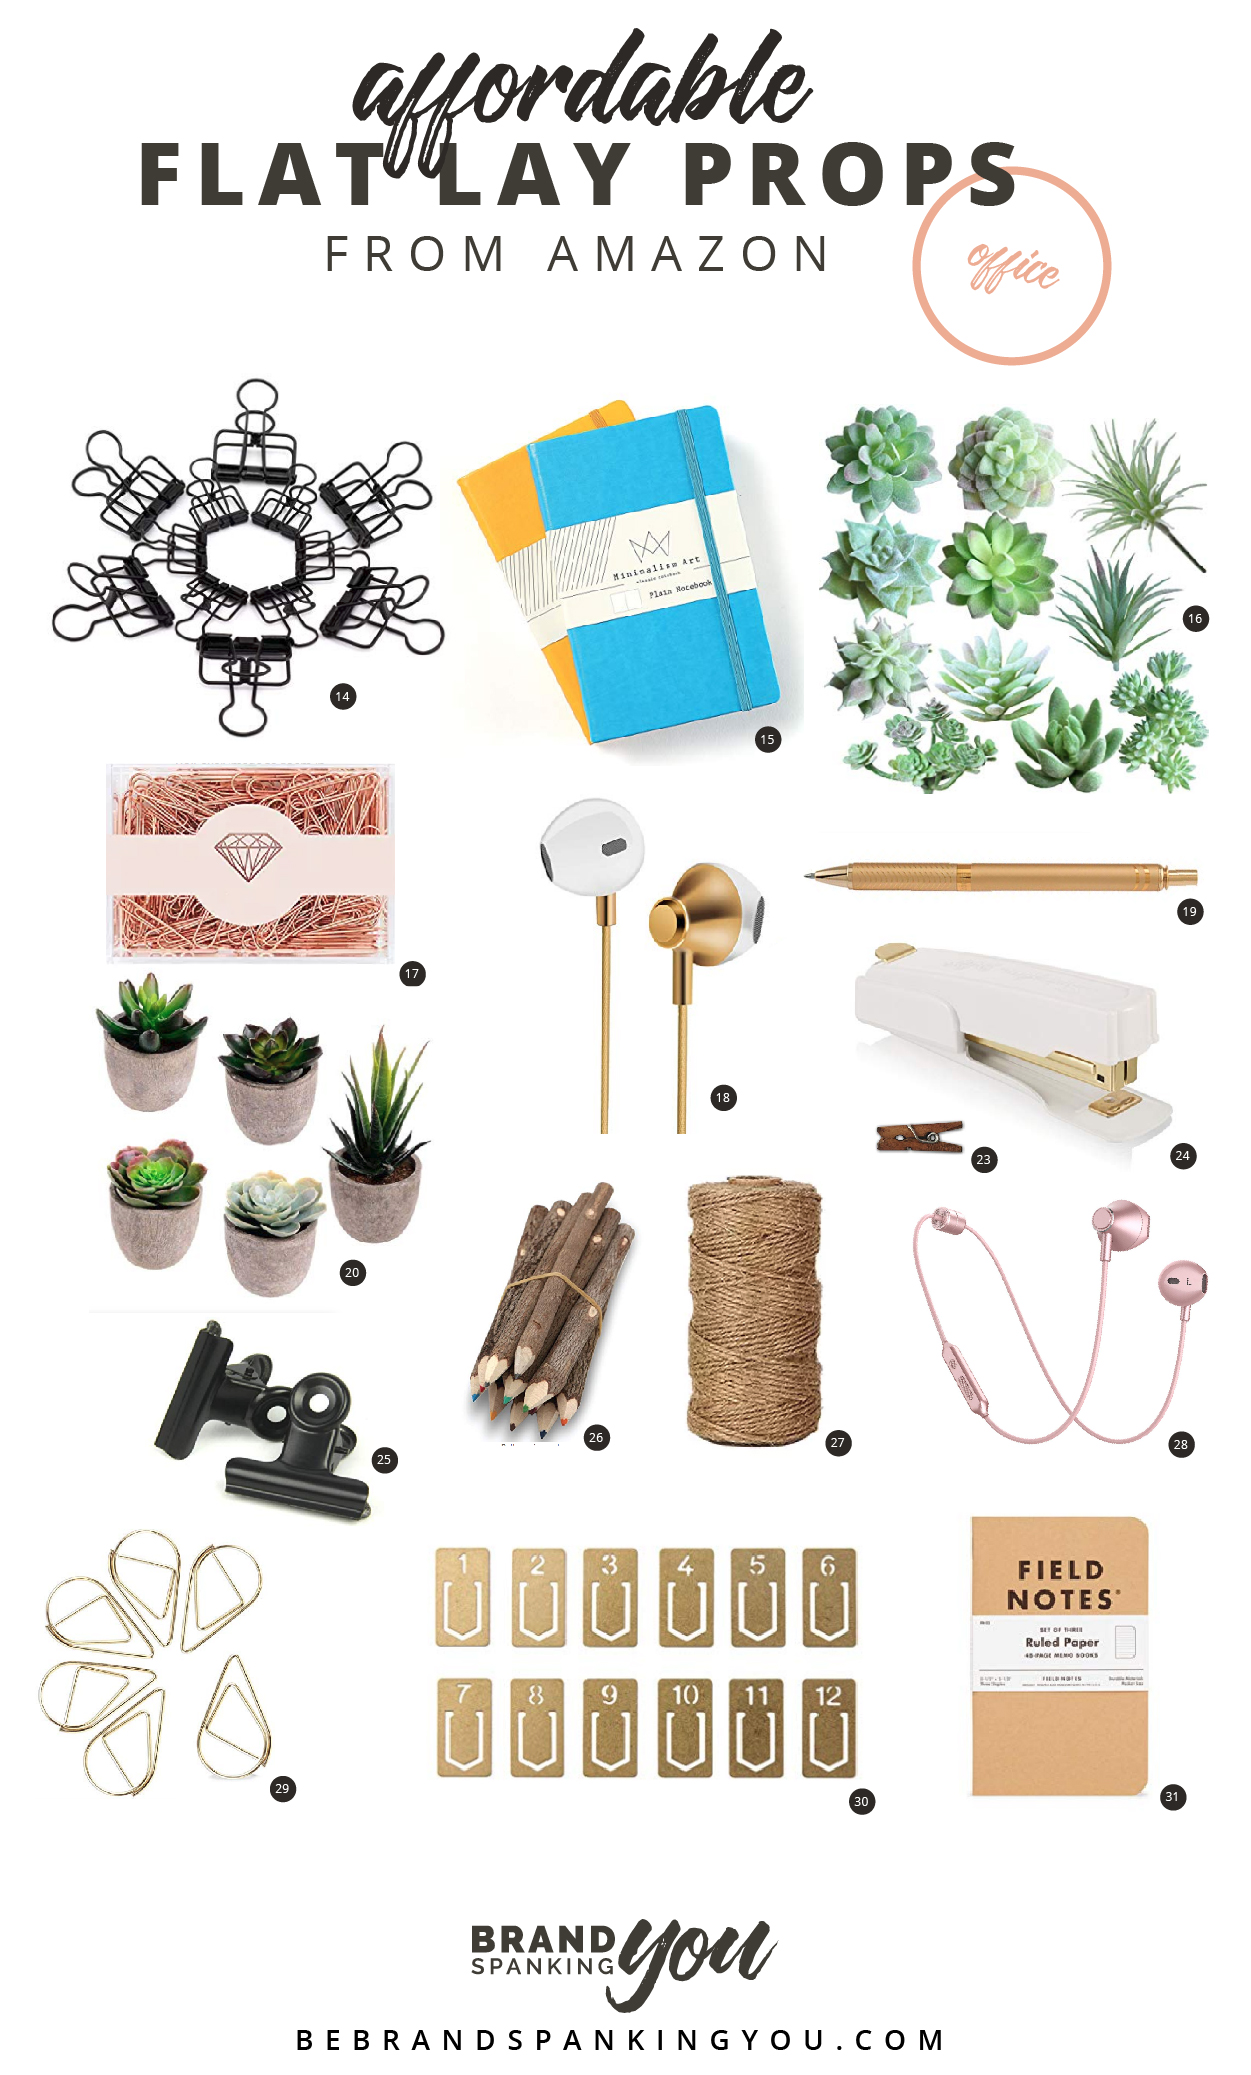 Props can make or break your flat lay. Use these styling props to create compelling office scenes in your social media posts. All super affordable and available on Amazon!